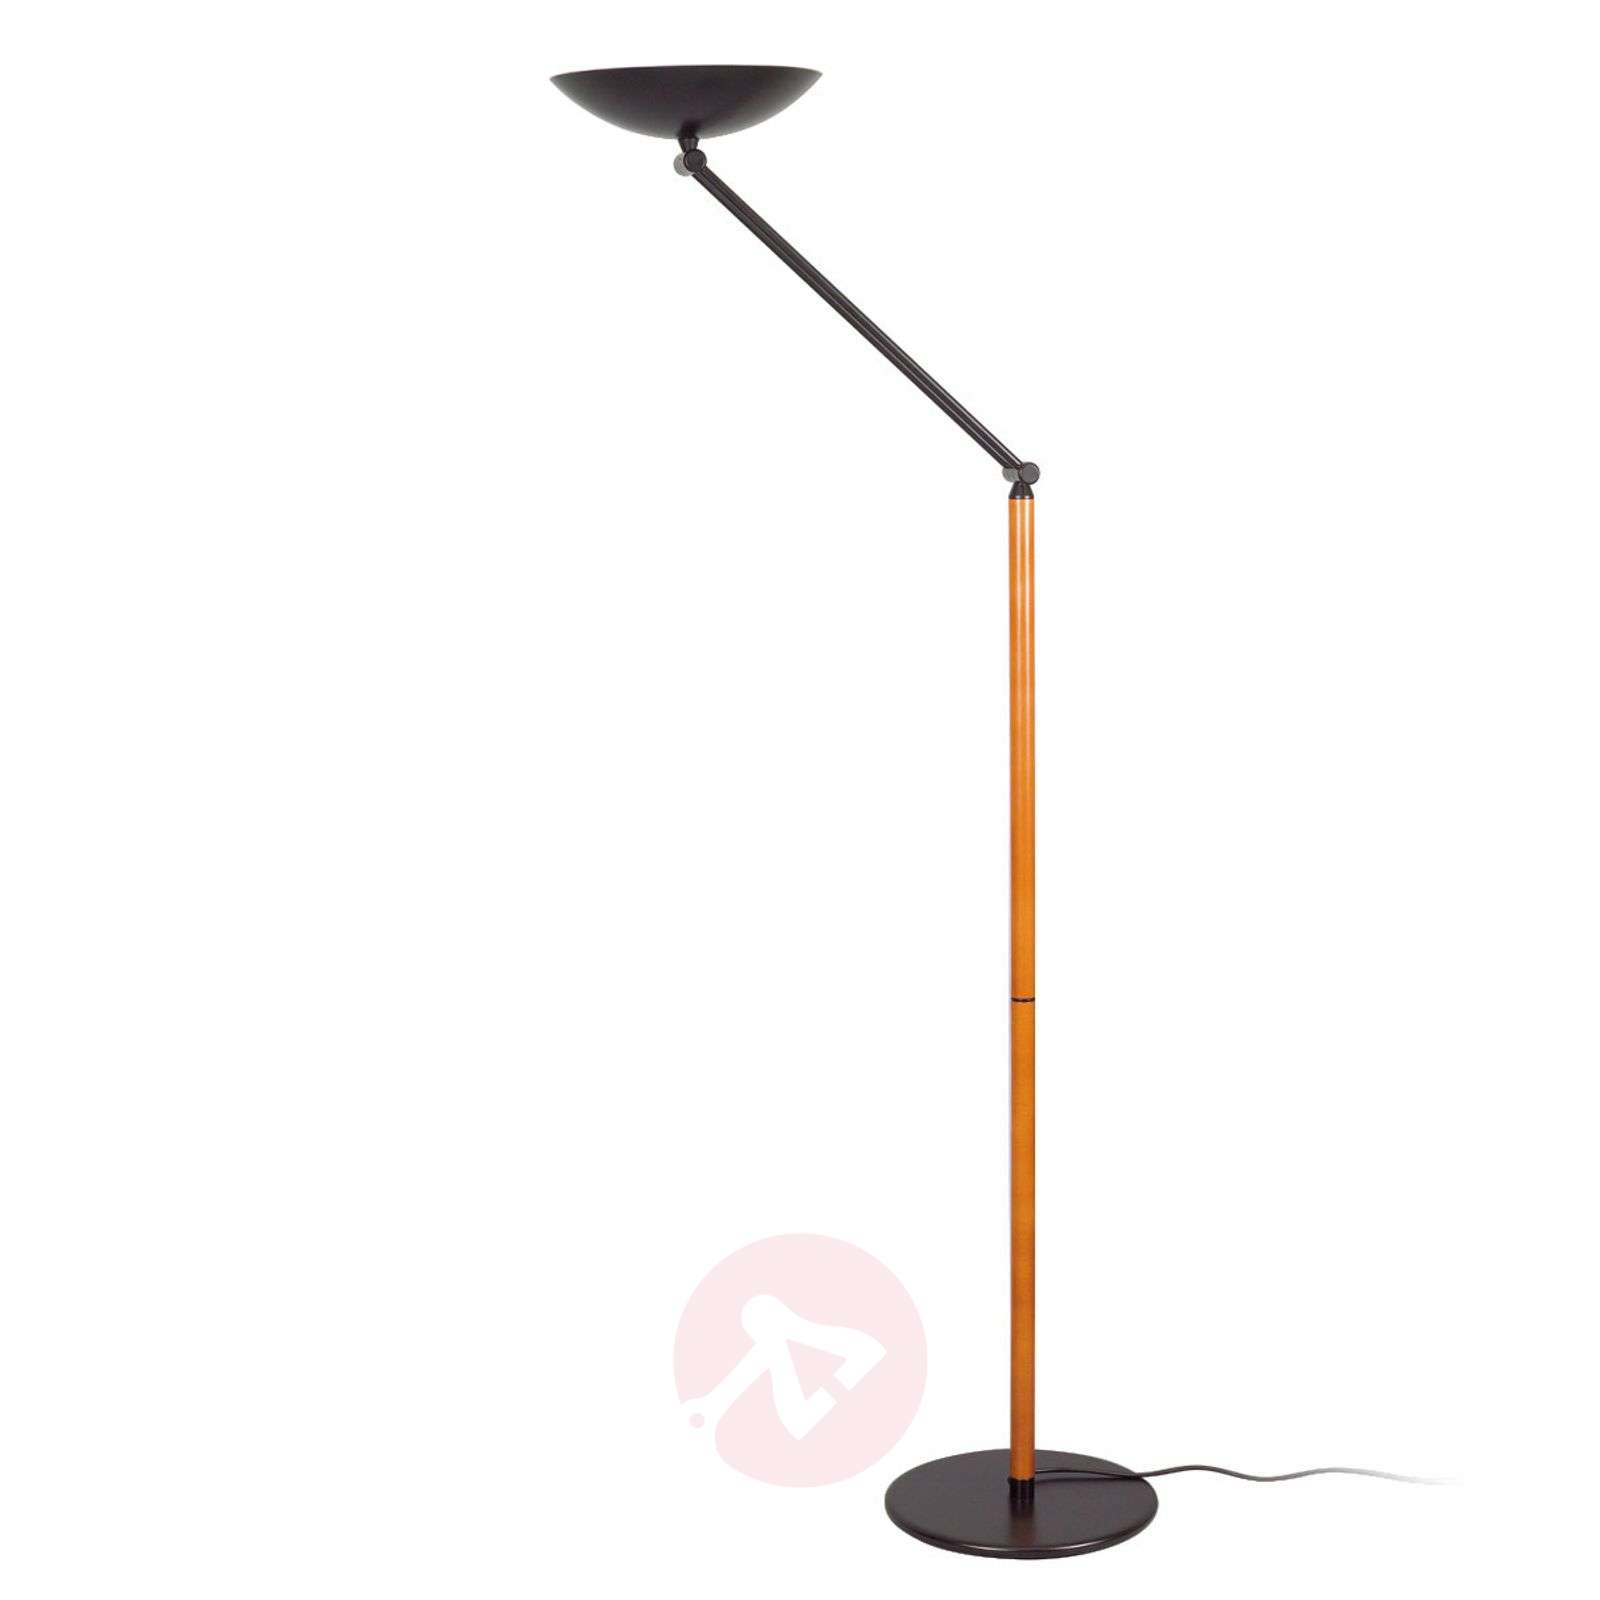 Lampadaire à éclairage indirect Libert 4-1065011X-02